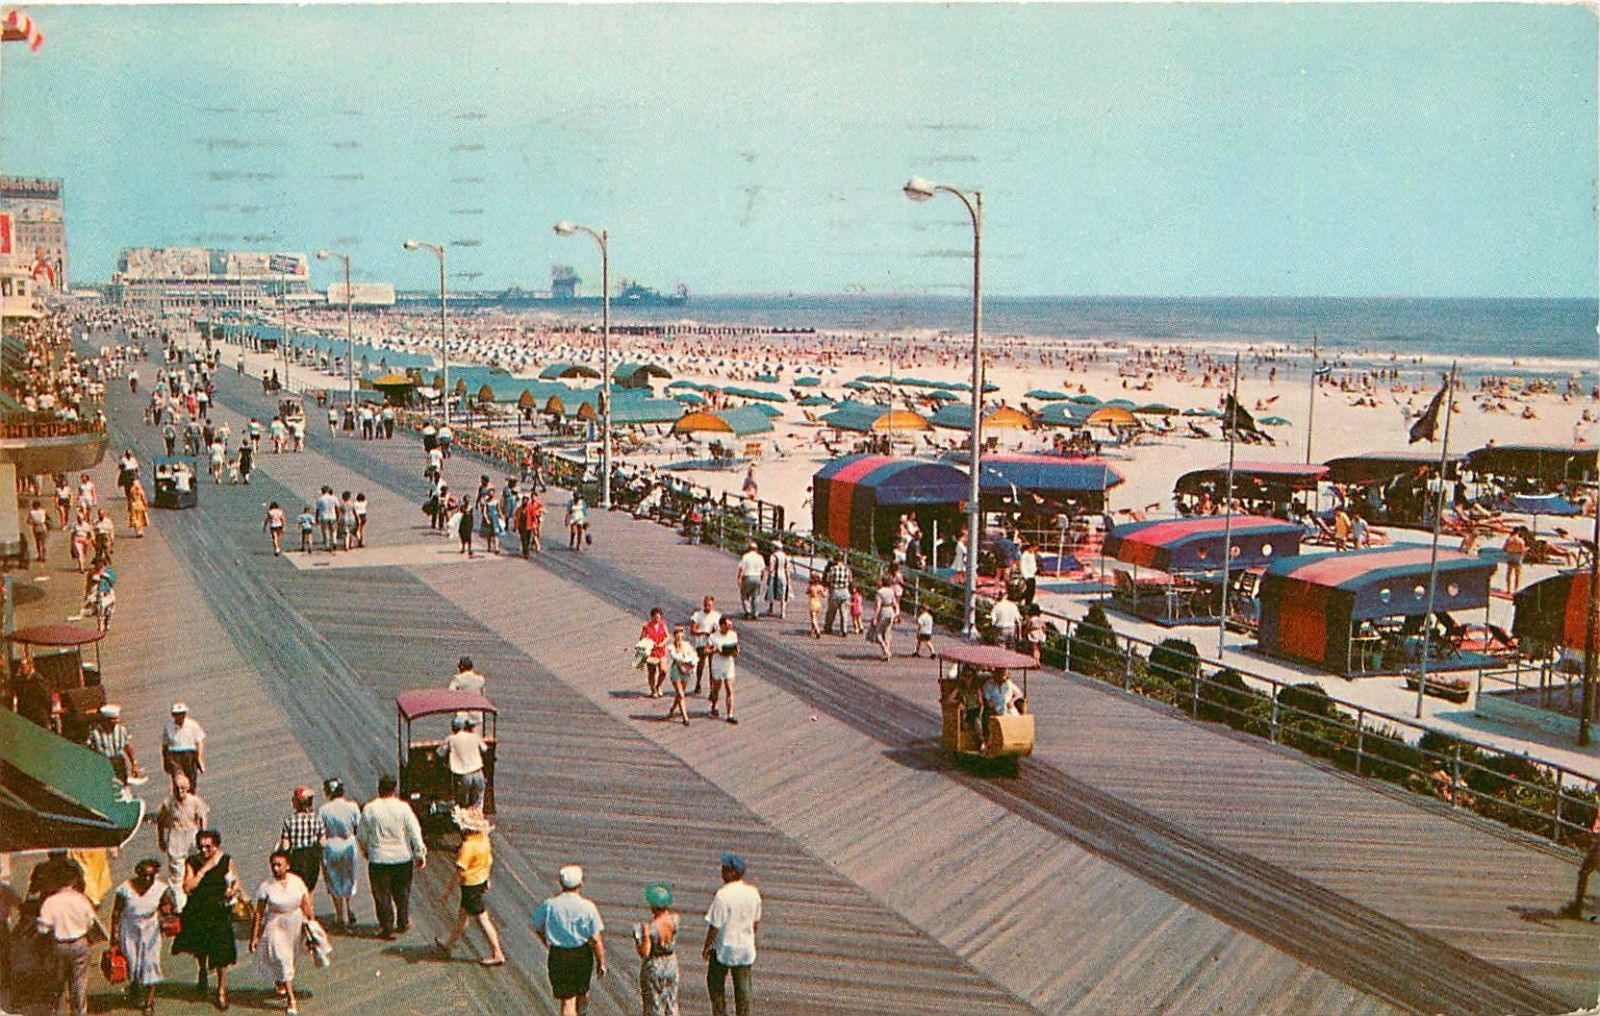 Atlantic City Boardwalk Beach Pm 1960s Nj New Jersey Postcard In United States New Jersey Other Atlantic City Boardwalk Beach Boardwalk Boardwalk